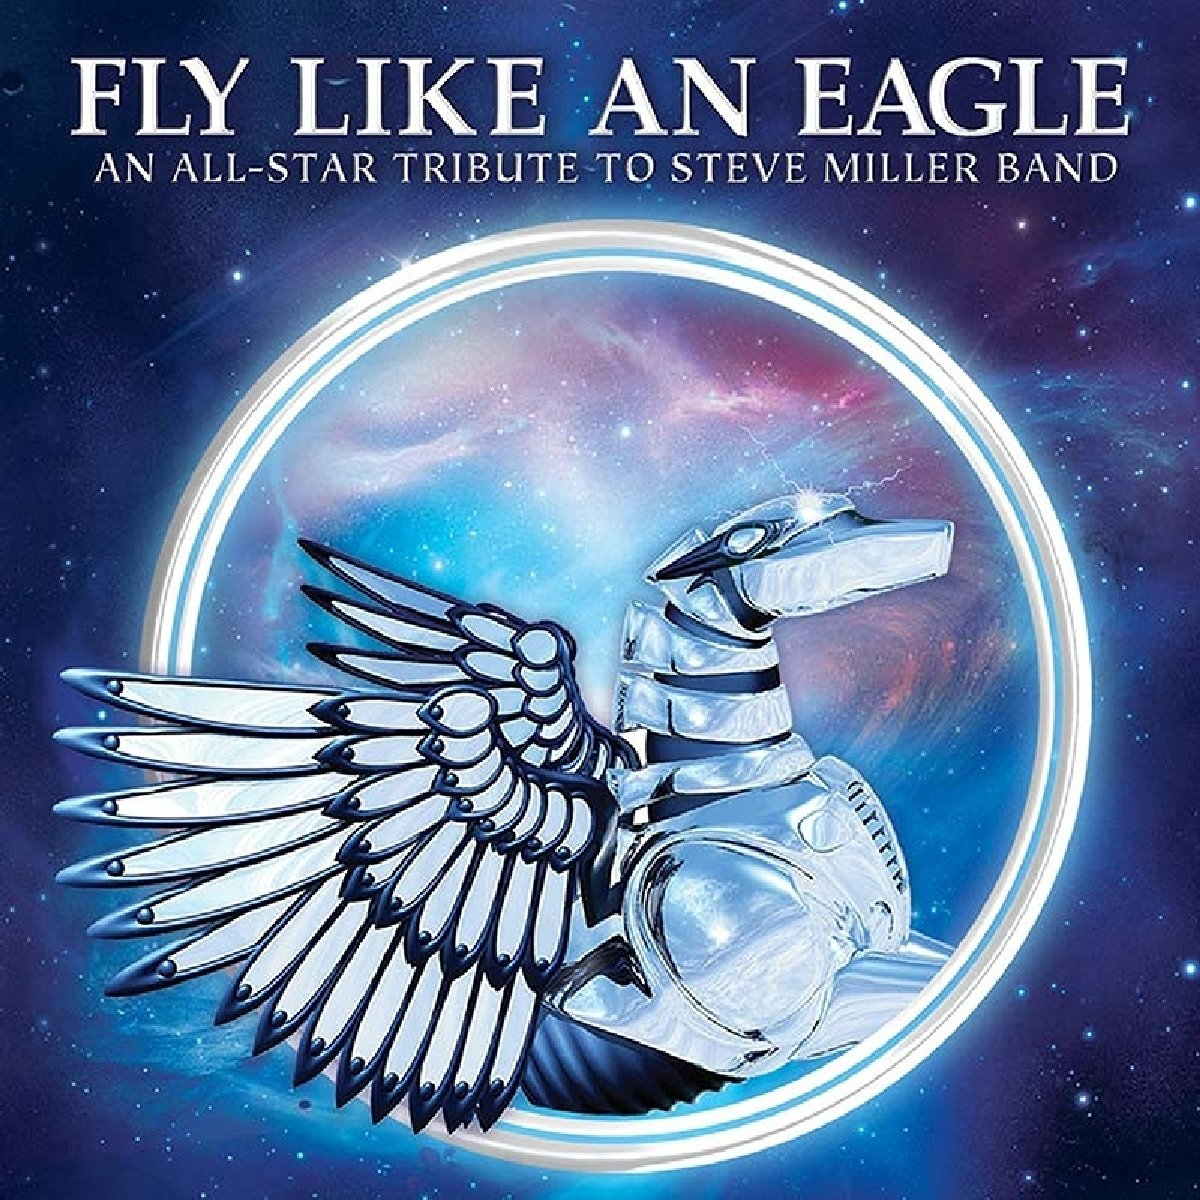 CD : Fly Like An Eagle - All-Star Tribute To Steve Miller Band / Various (CD)